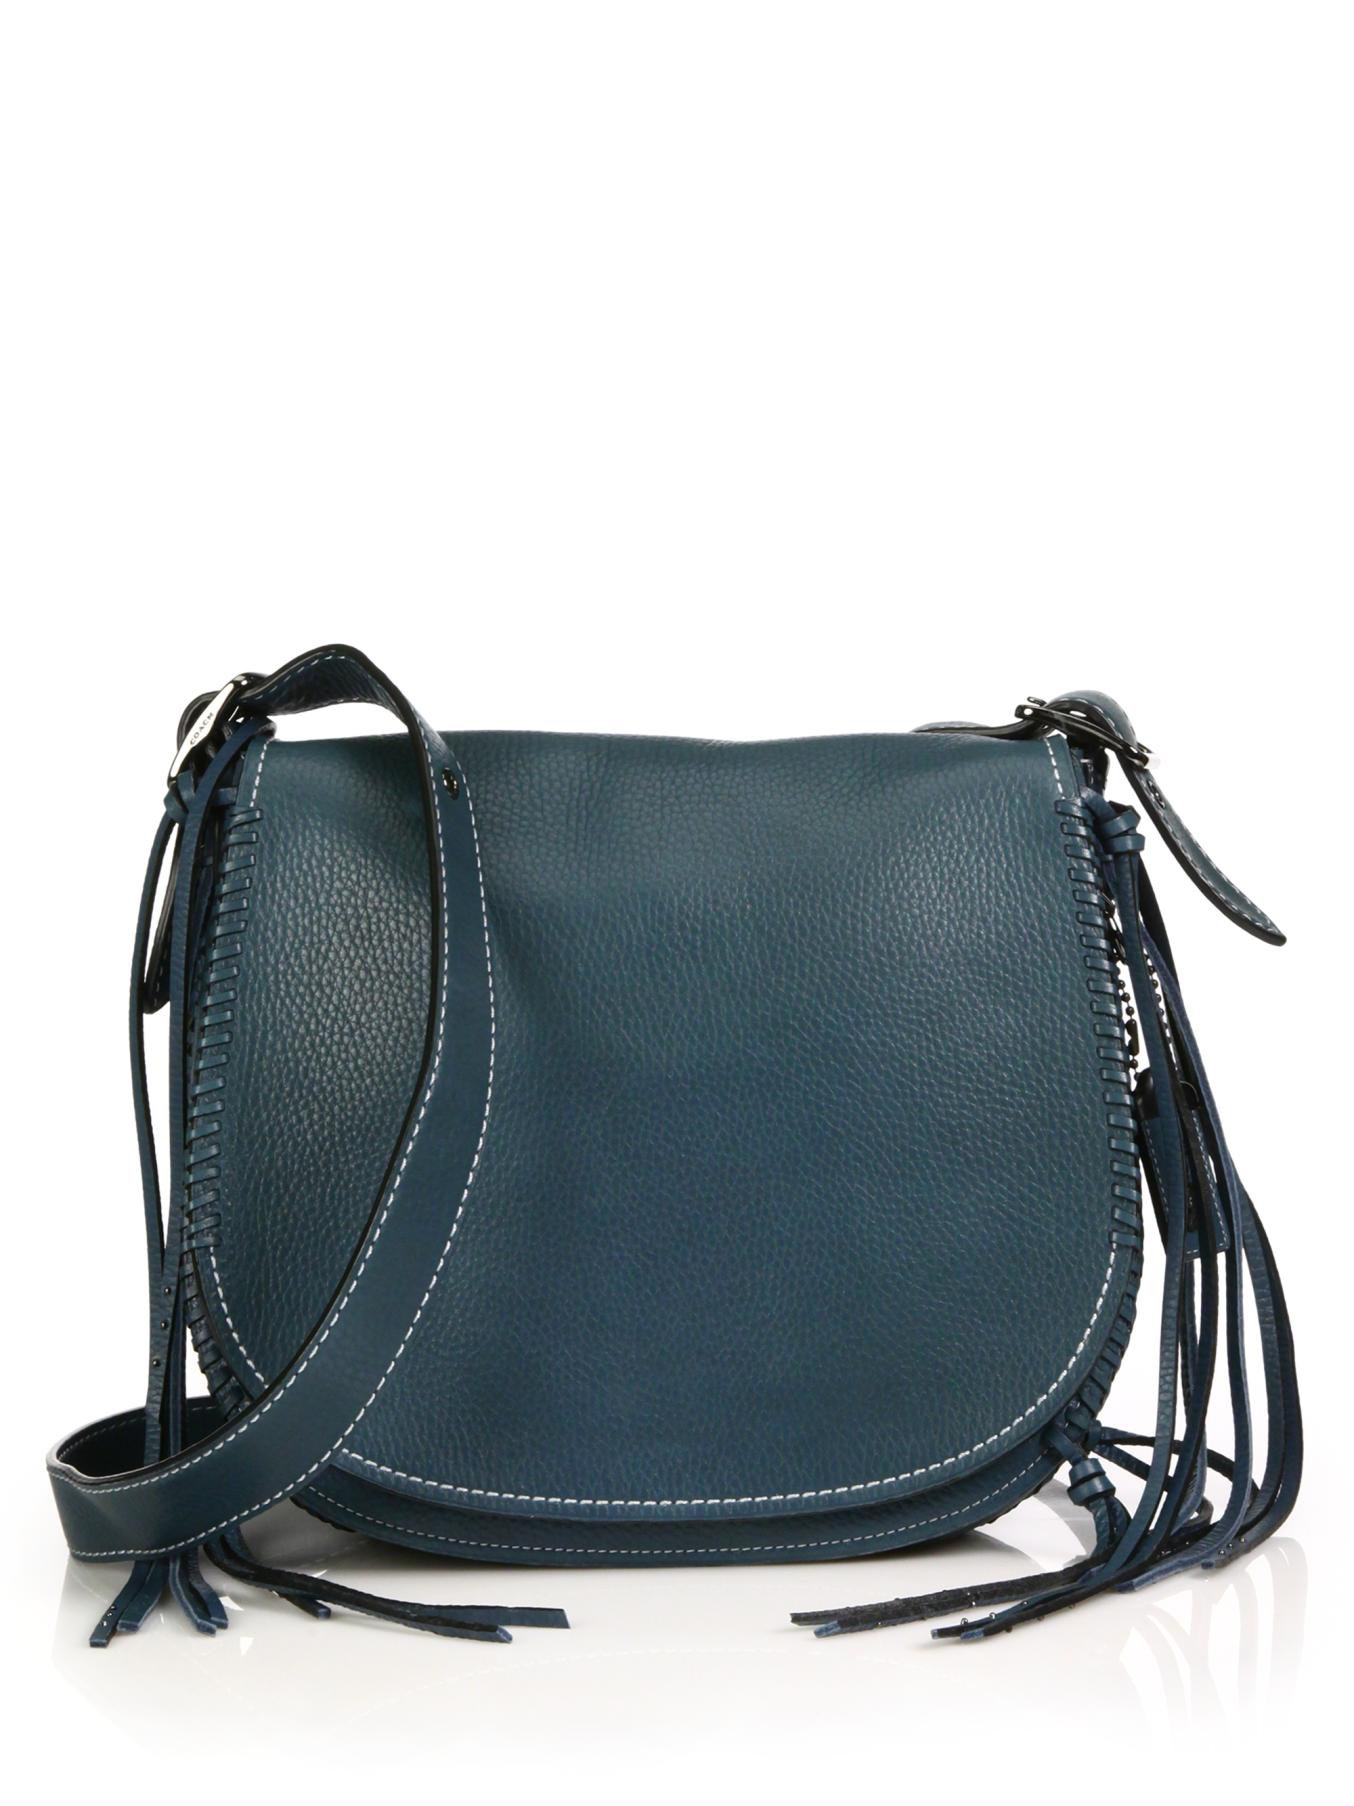 3e92ac89526f ... backpack 48d1f c5211 clearance lyst coach whipstitched leather saddle  bag in blue b21fd d63bf ...